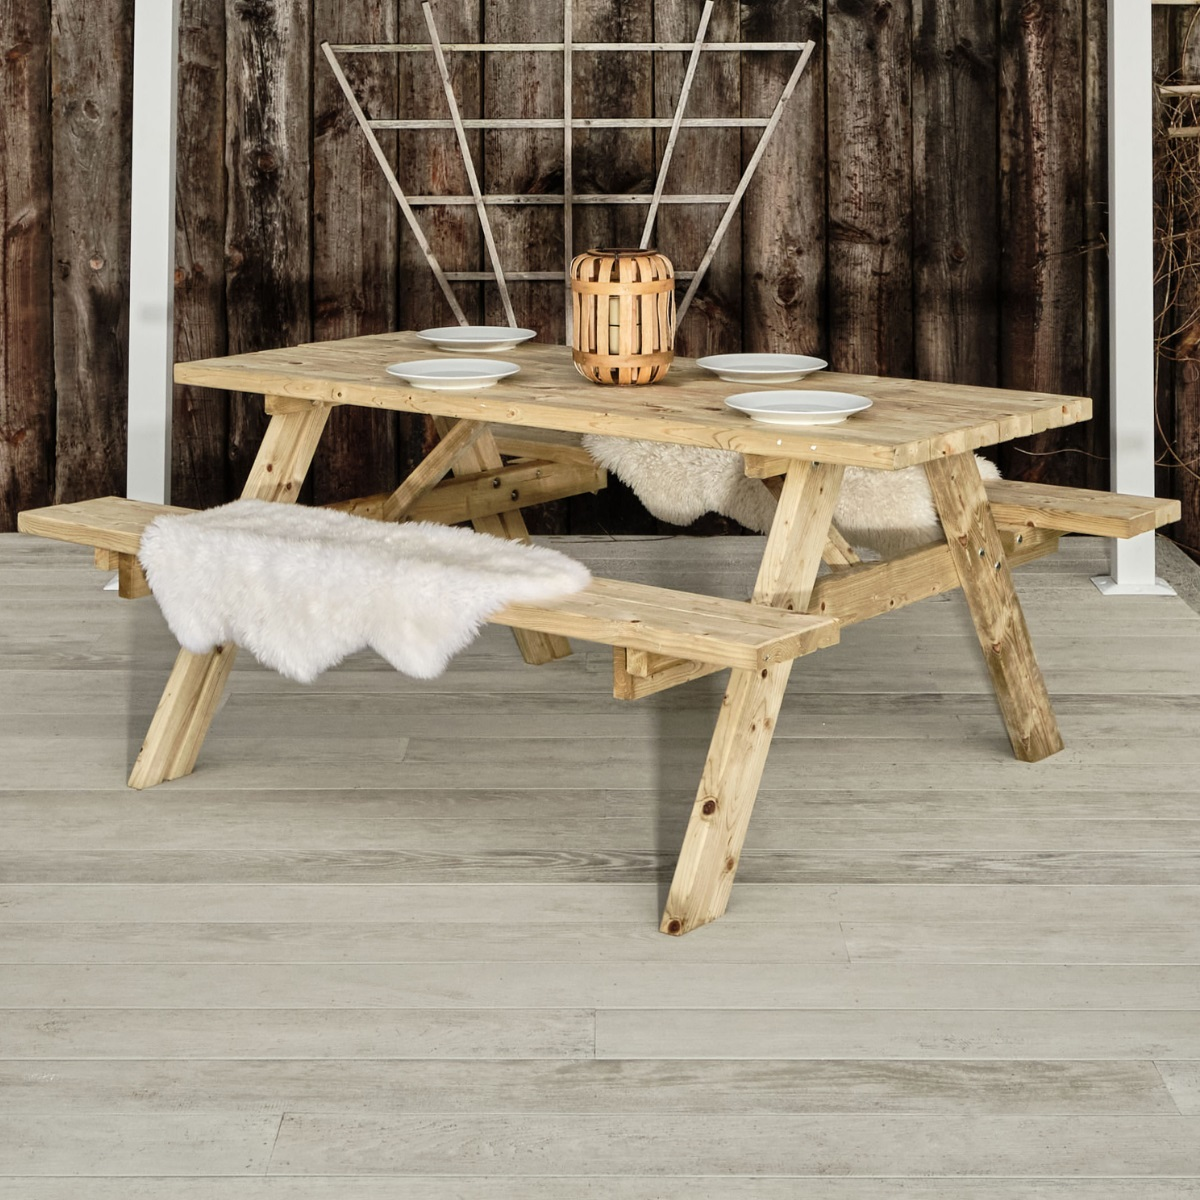 A wooden A frame picnic table seating up to 8 people on a deck